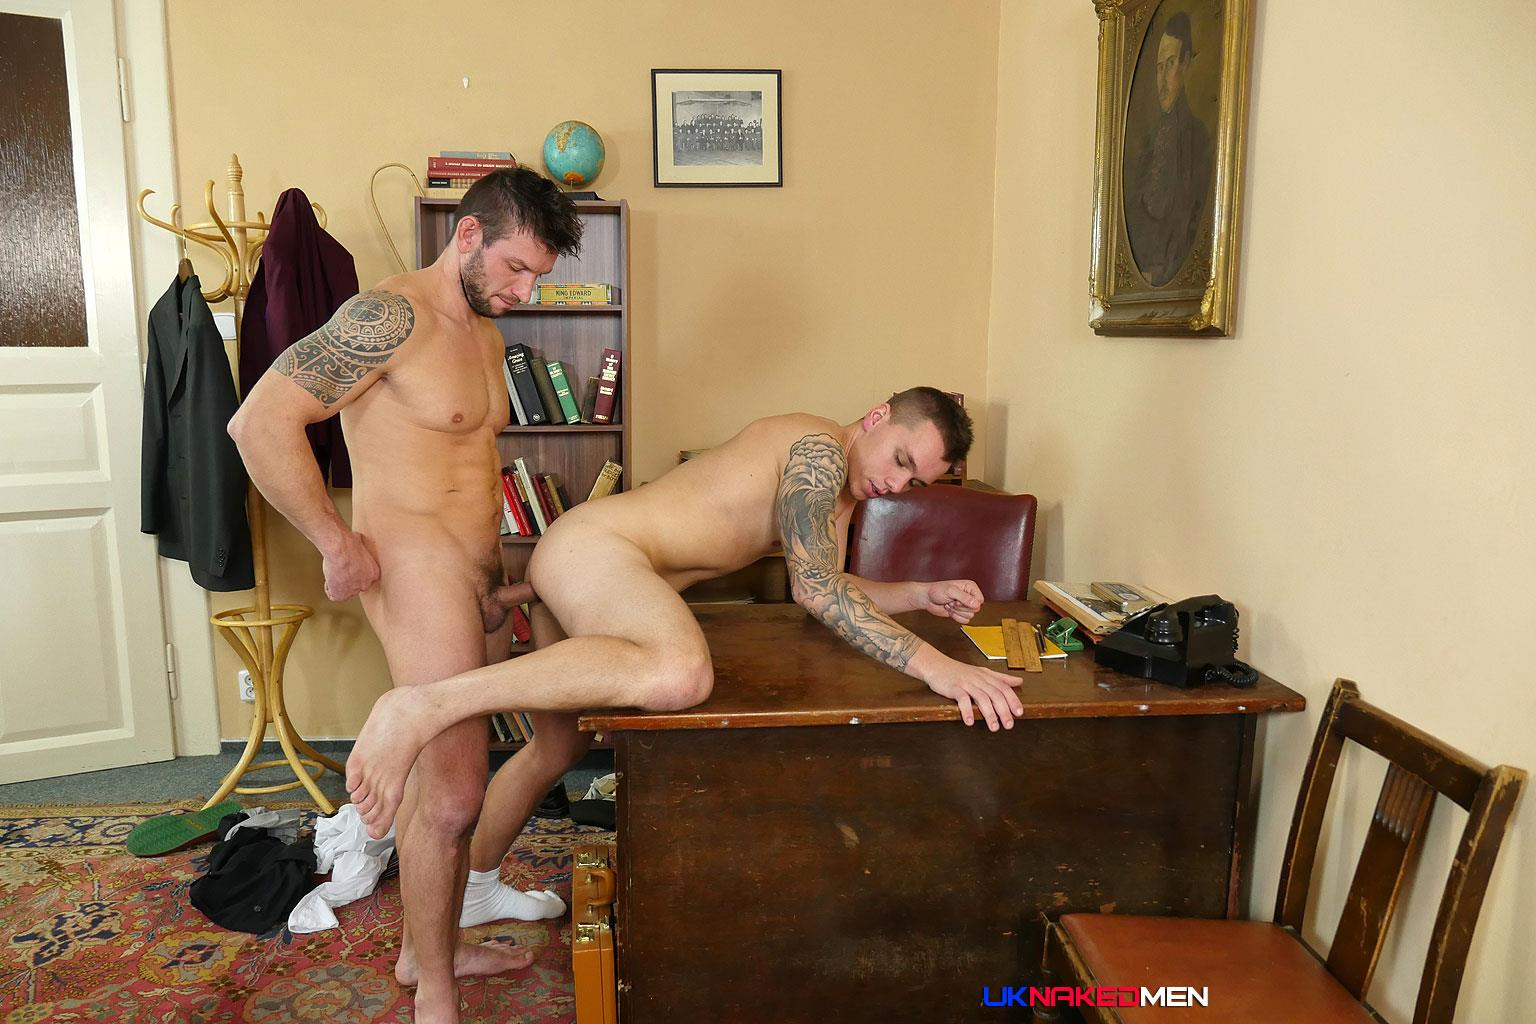 UK Naked Men Rado Zusila and Mickey Rush Uncut Cock Bareback Amateur Gay Porn 12 Younger British Guy Takes An Uncut Cock Up The Ass Bareback For The First Time